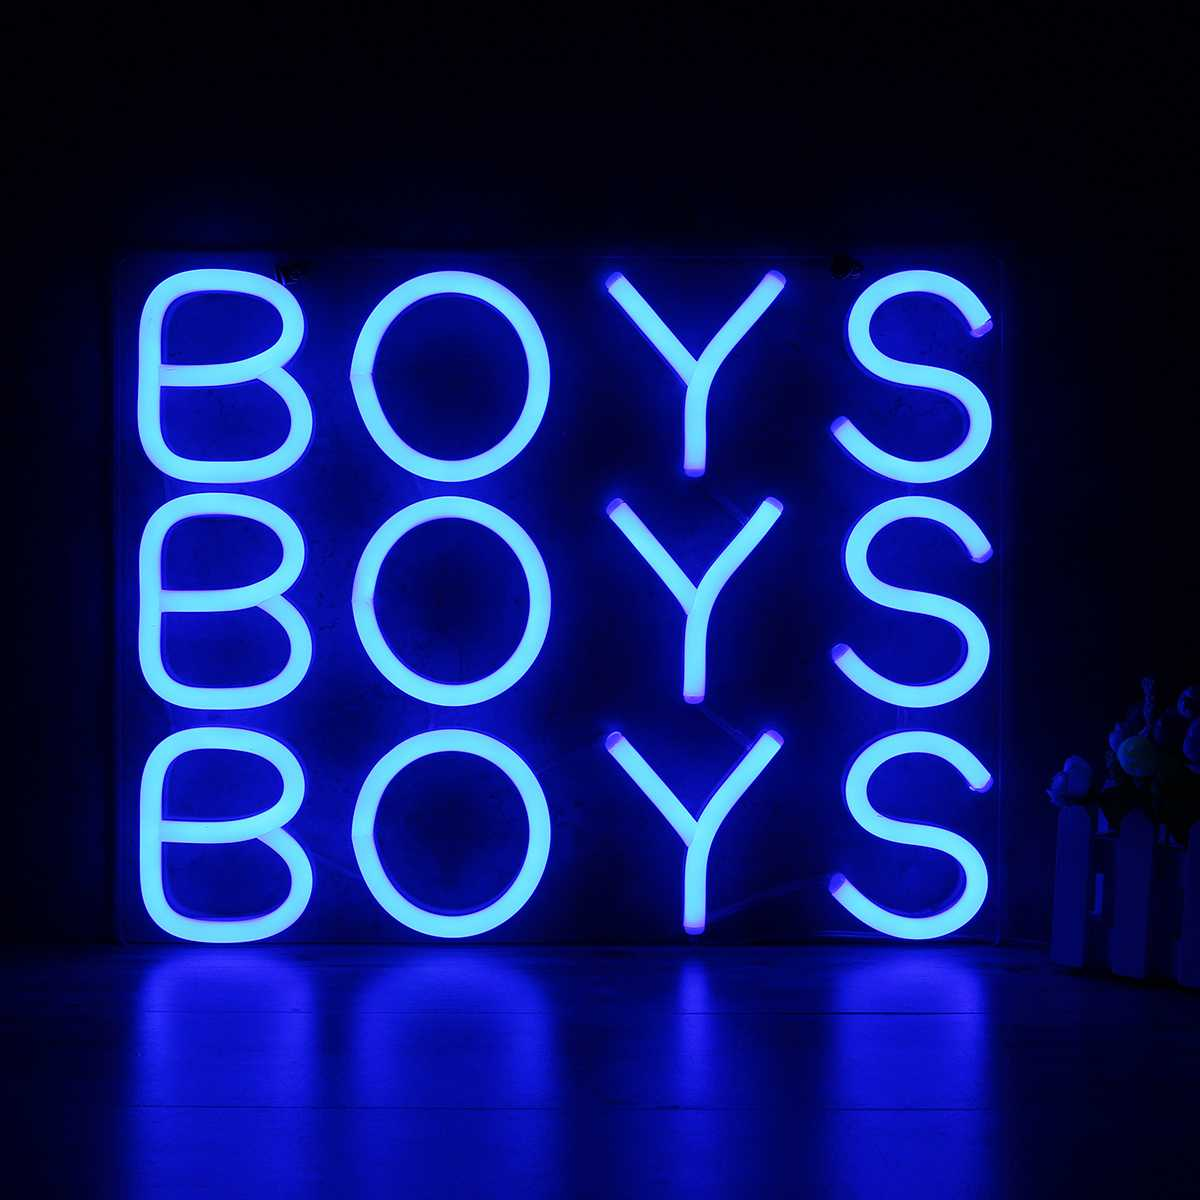 BOYS Neon Sign Light Beer Bar Pub Party Decoration Home Room Wall Ornaments Gifts 25x25cm US Plug 10''x10''